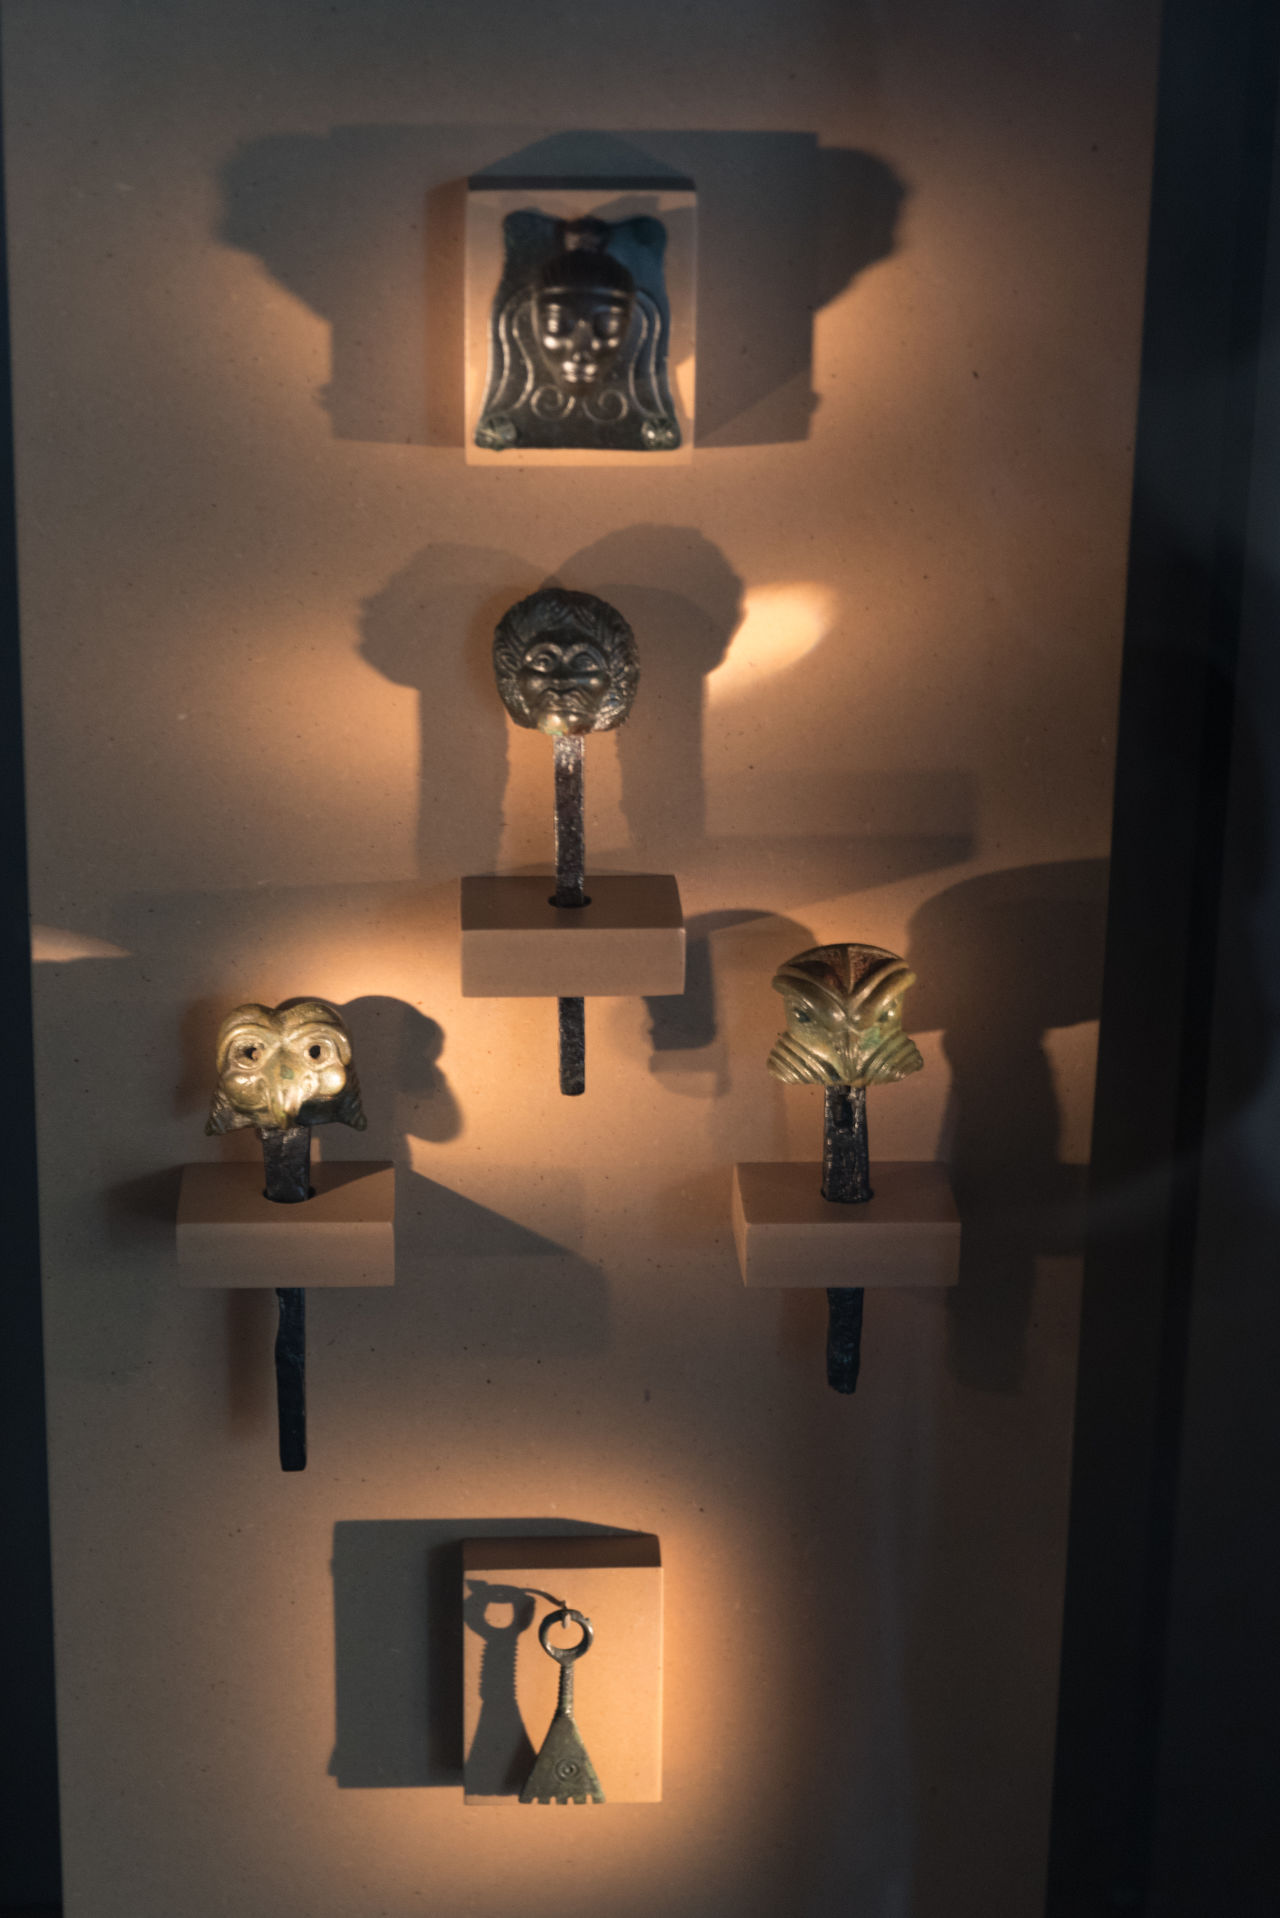 Celtic objects Ancient Civilization ArtWork Celts Craftsmanship  Decoration Excavations Exhibition Illuminated Museum No People